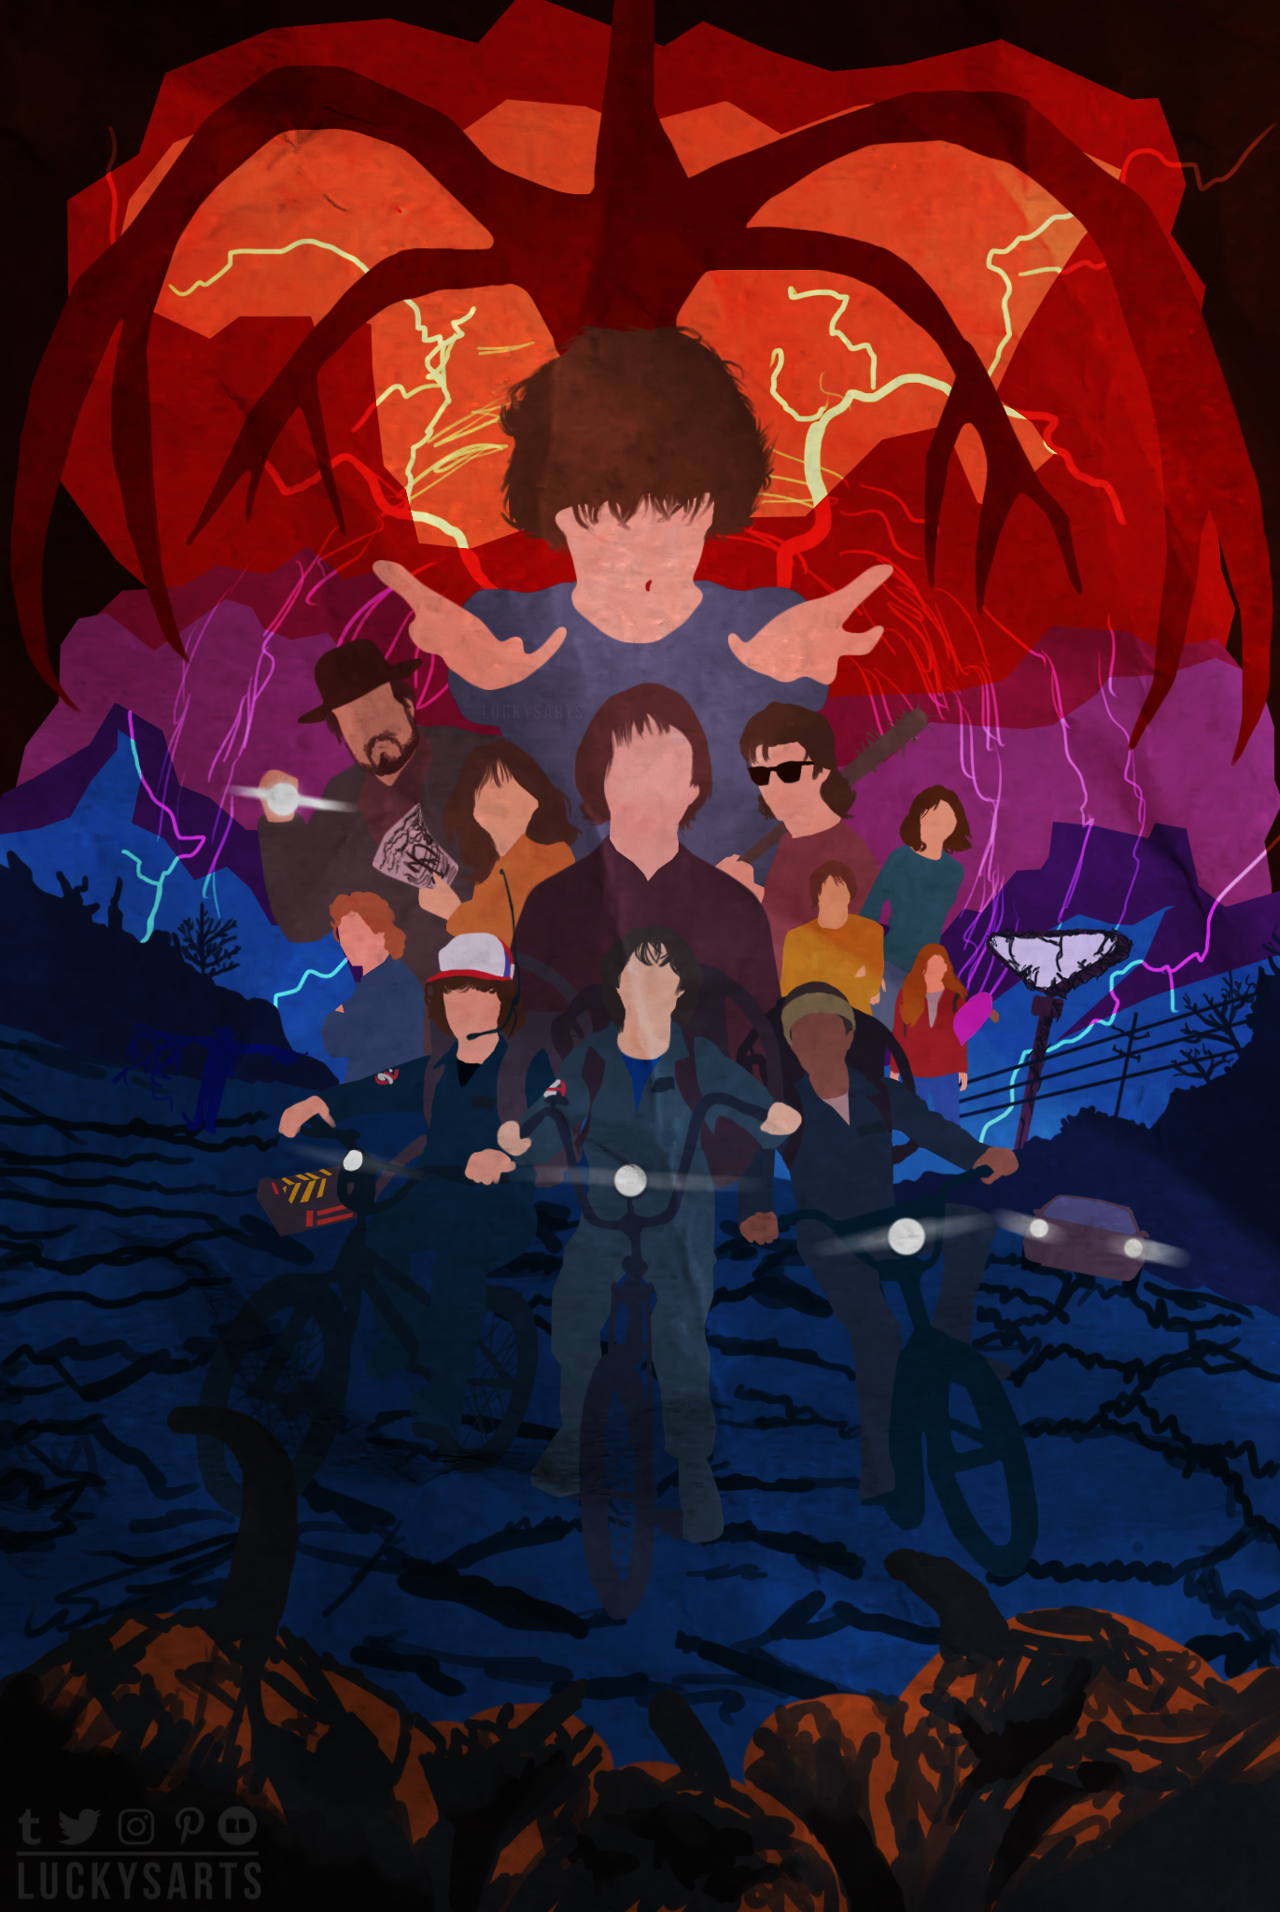 Minimalist Poster Stranger Things Season 2 Wallpapers Series